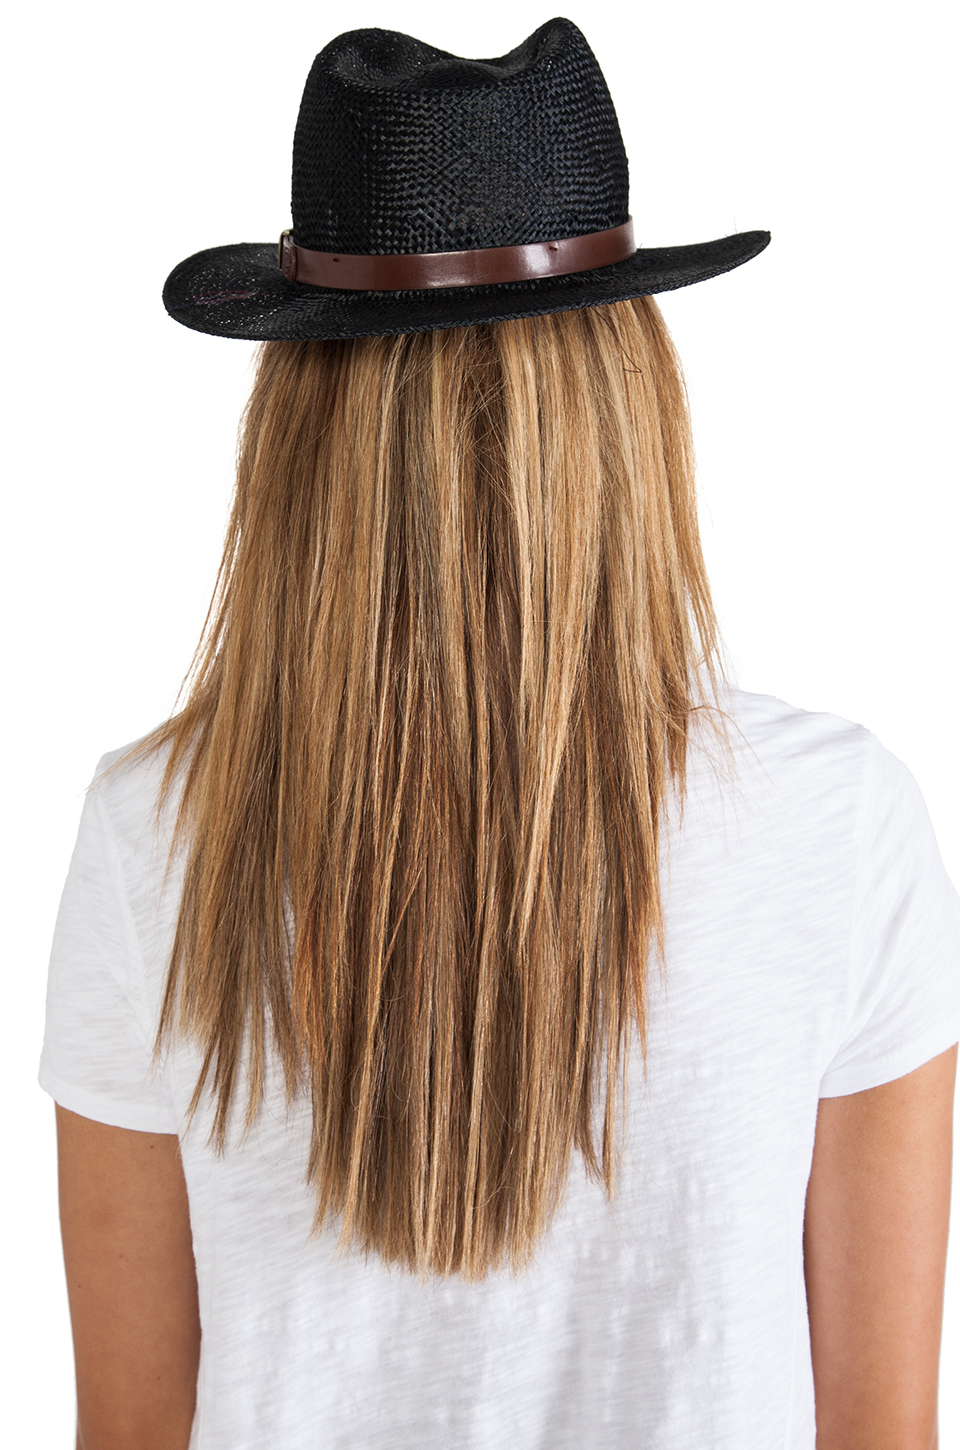 black straw fedora brixton revolve clothing